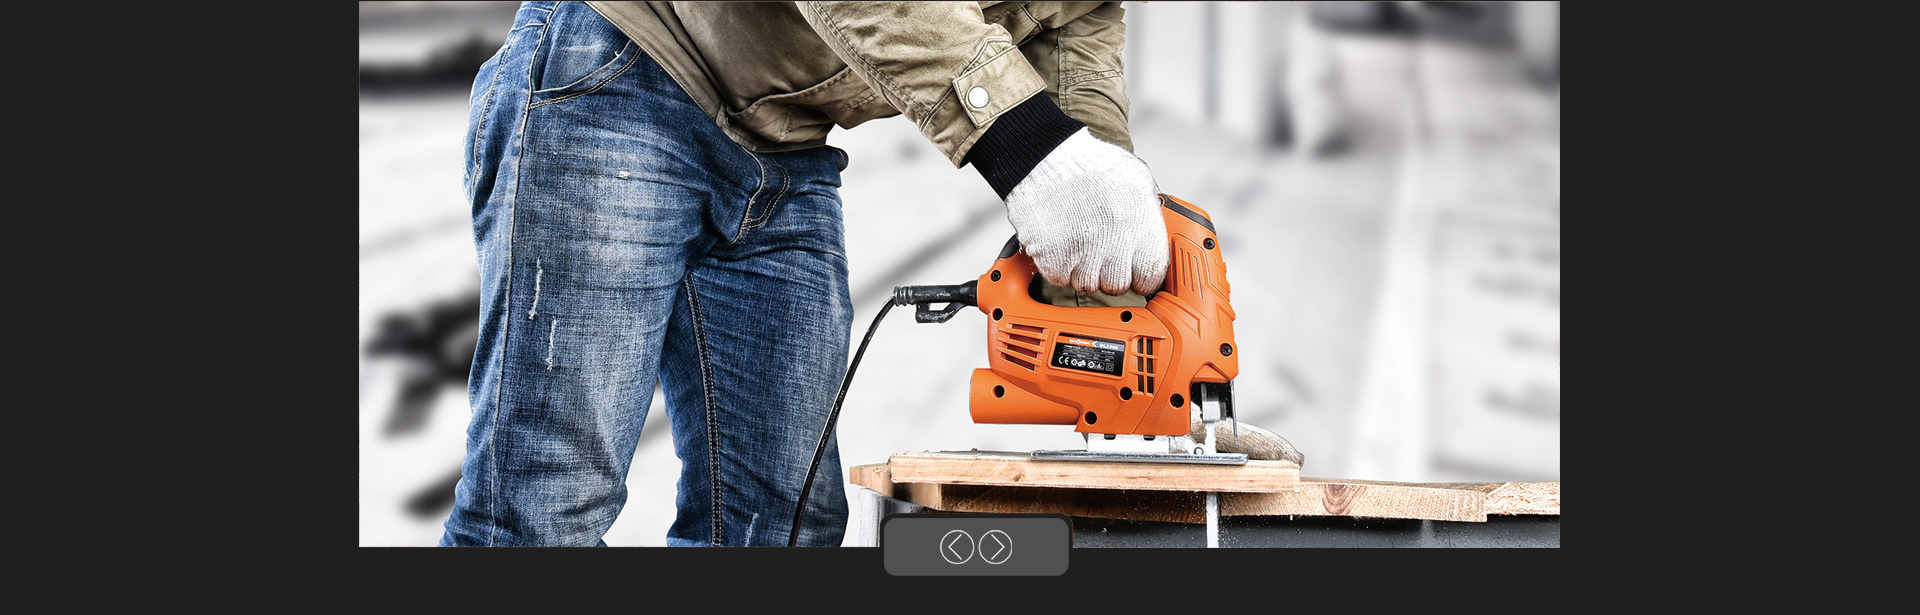 Zhejiang Dulee Electrical Appliance Co., Ltd., Dulee group, Yongkang Dulee, Dulee tools, Dulee Dongli electric drill, impact drill, impact drill, electric hammer, angle grinder, curve sawing, stone cutting machine, miter saw kit, Zhejiang electric tool